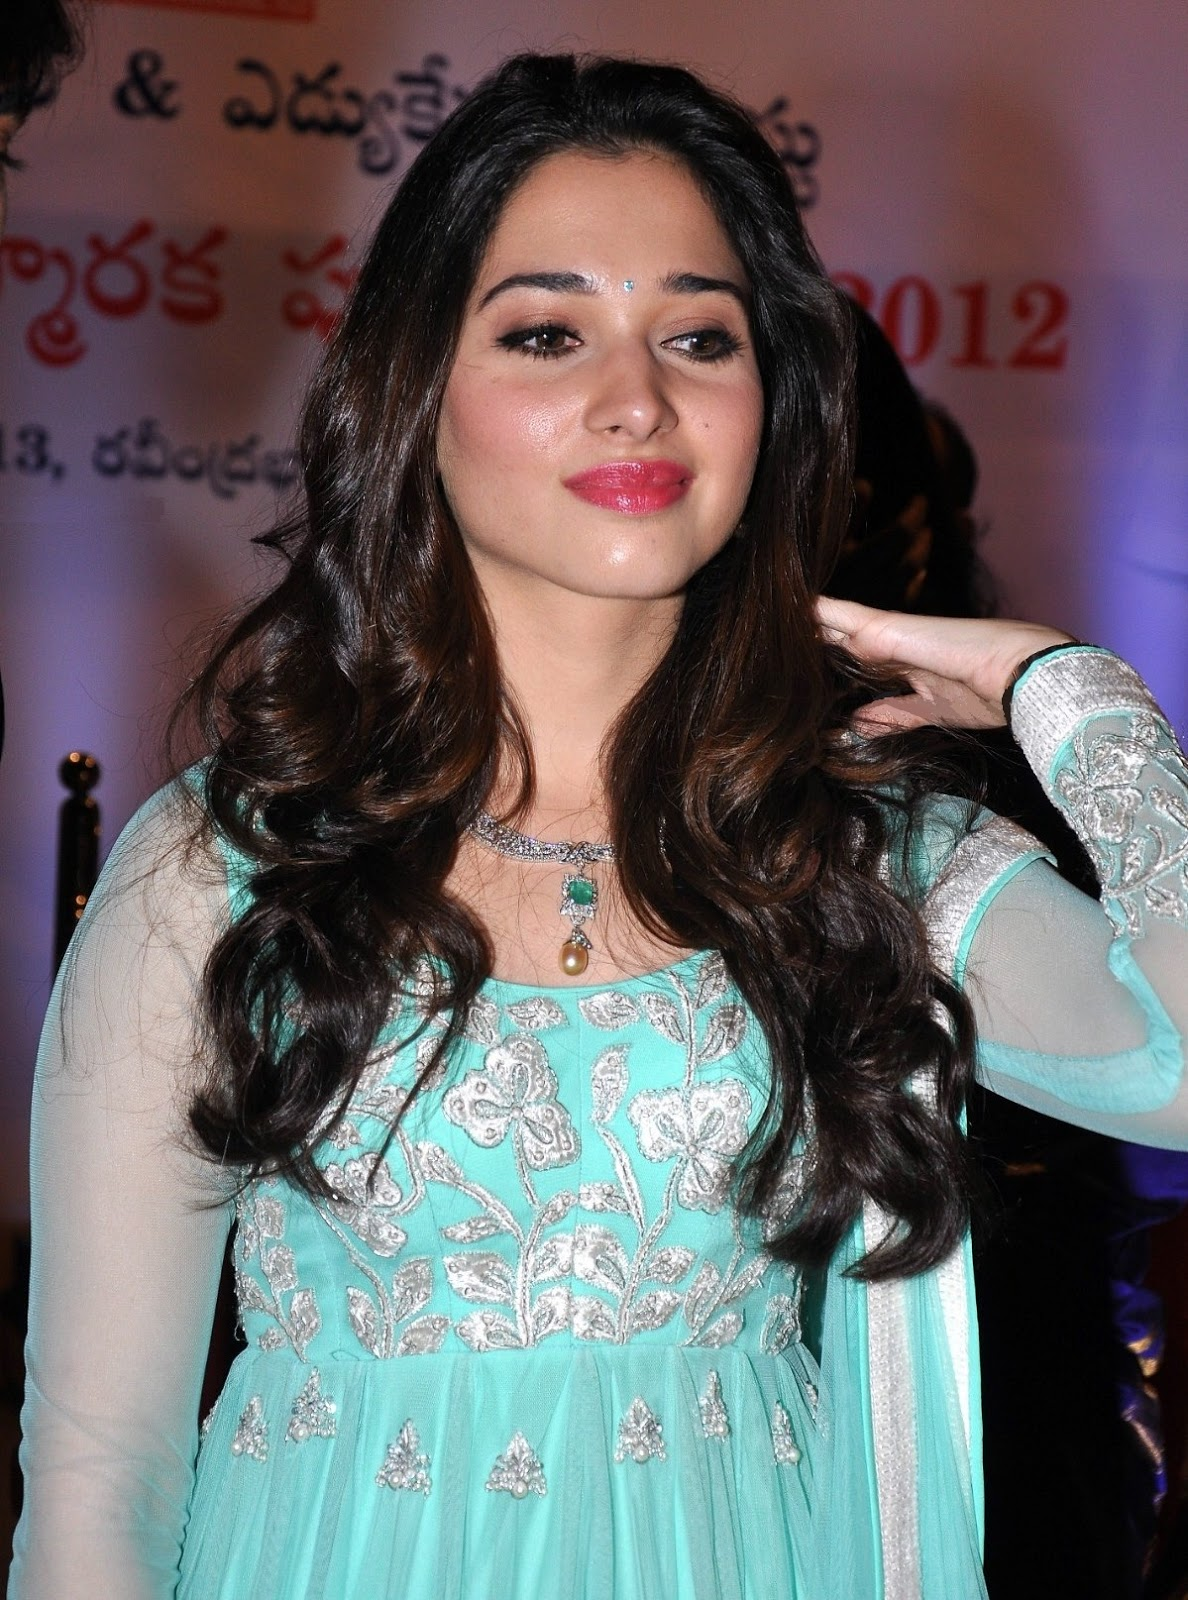 Tamanna Blue Saree: High Quality Bollywood Celebrity Pictures: Tamanna Bhatia